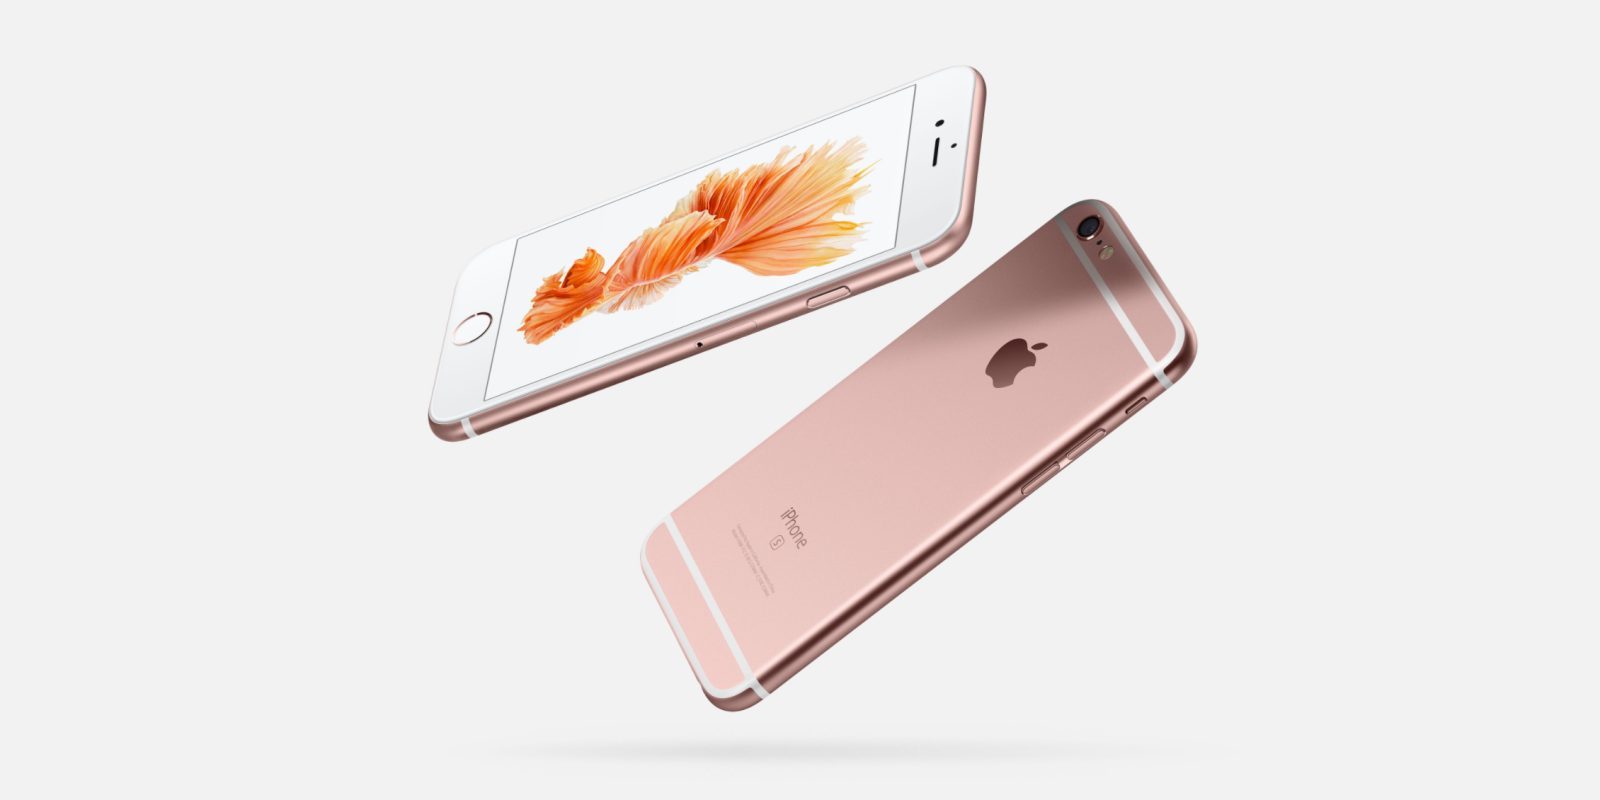 iPhone 6s is a great buy for the kids from $120 in today's sale (Refurb)